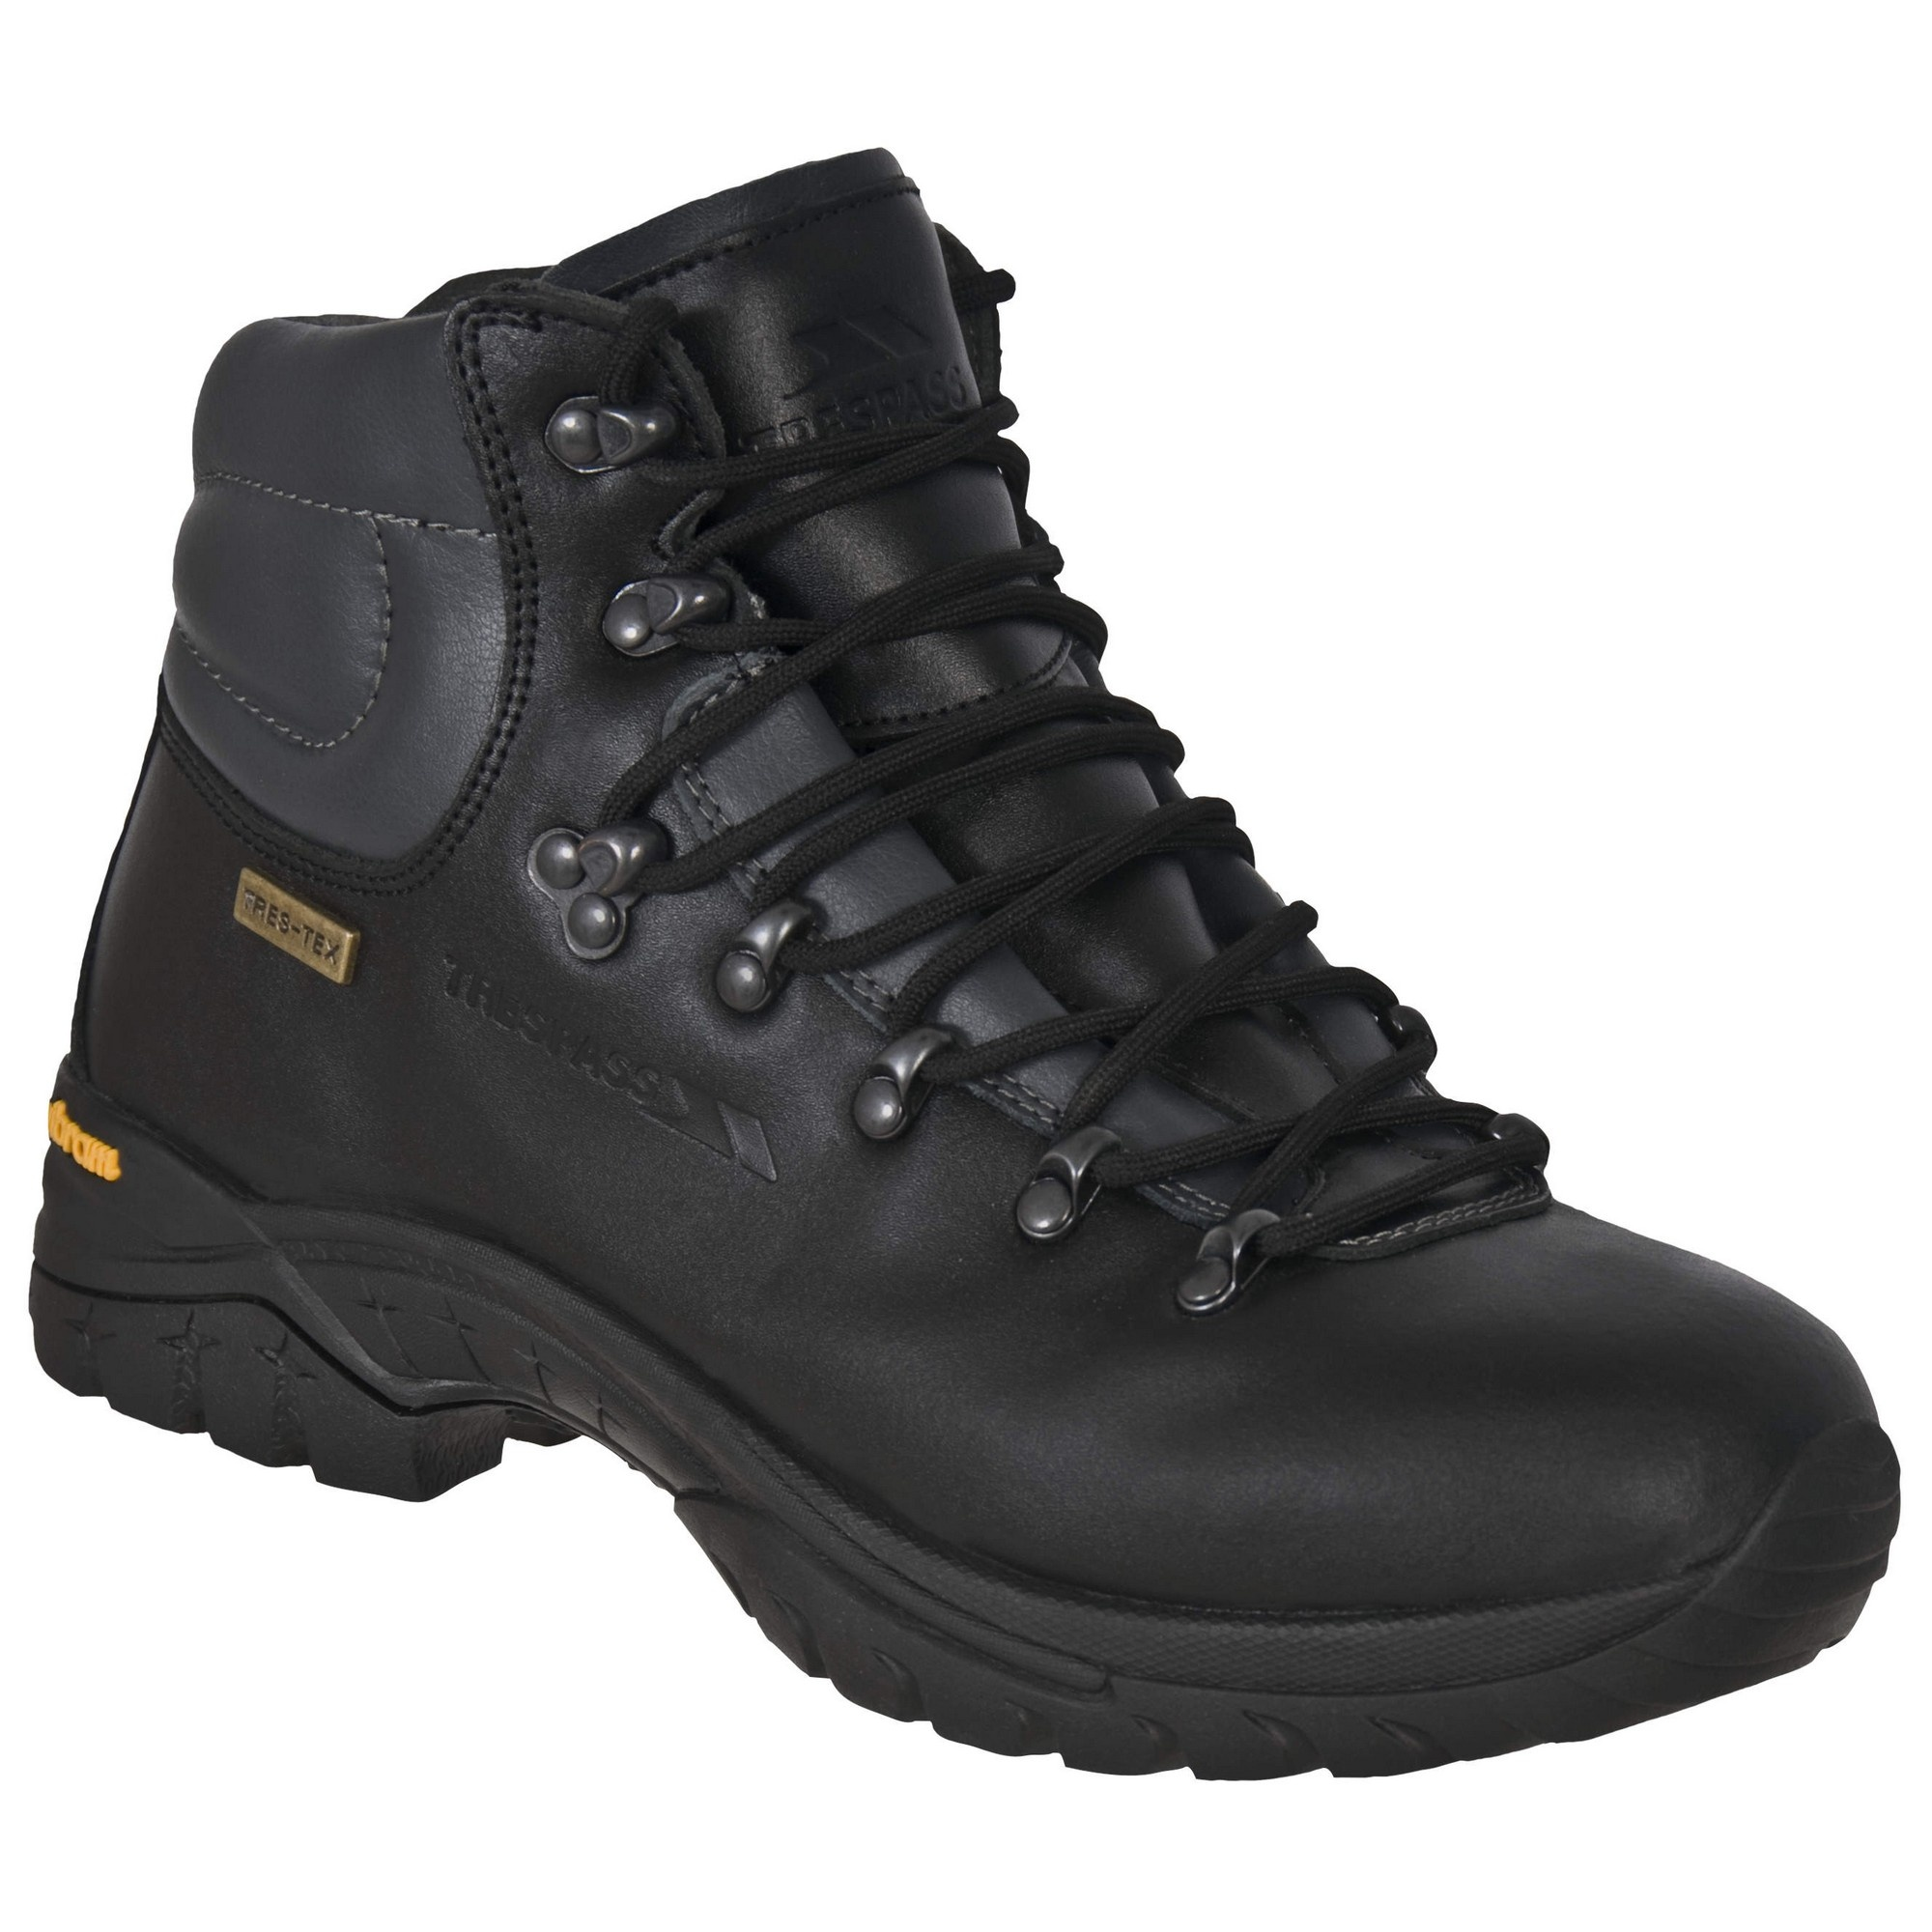 trespass mens walker waterproof leather walking boots ebay